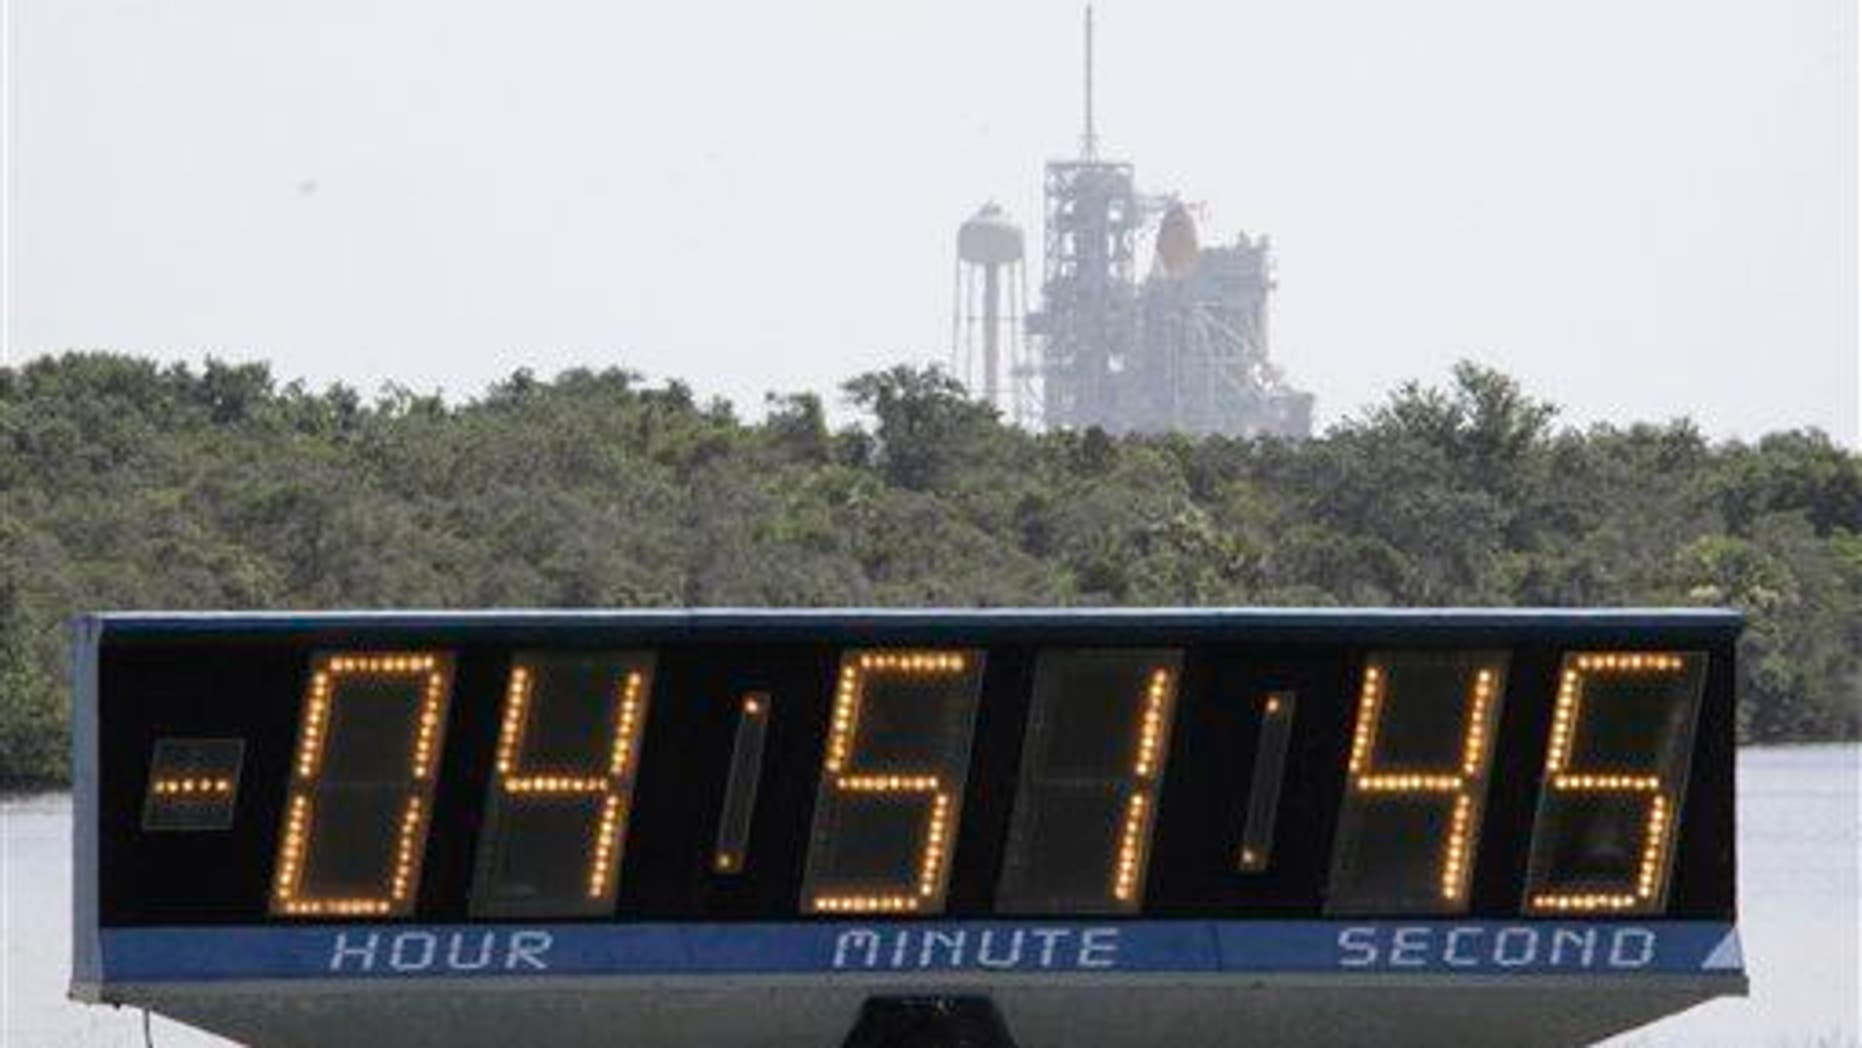 The countdown clock continues to click as the space shuttle Endeavour sits at the Kennedy Space Center at Cape Canaveral, Fla., on July 12, 2009.